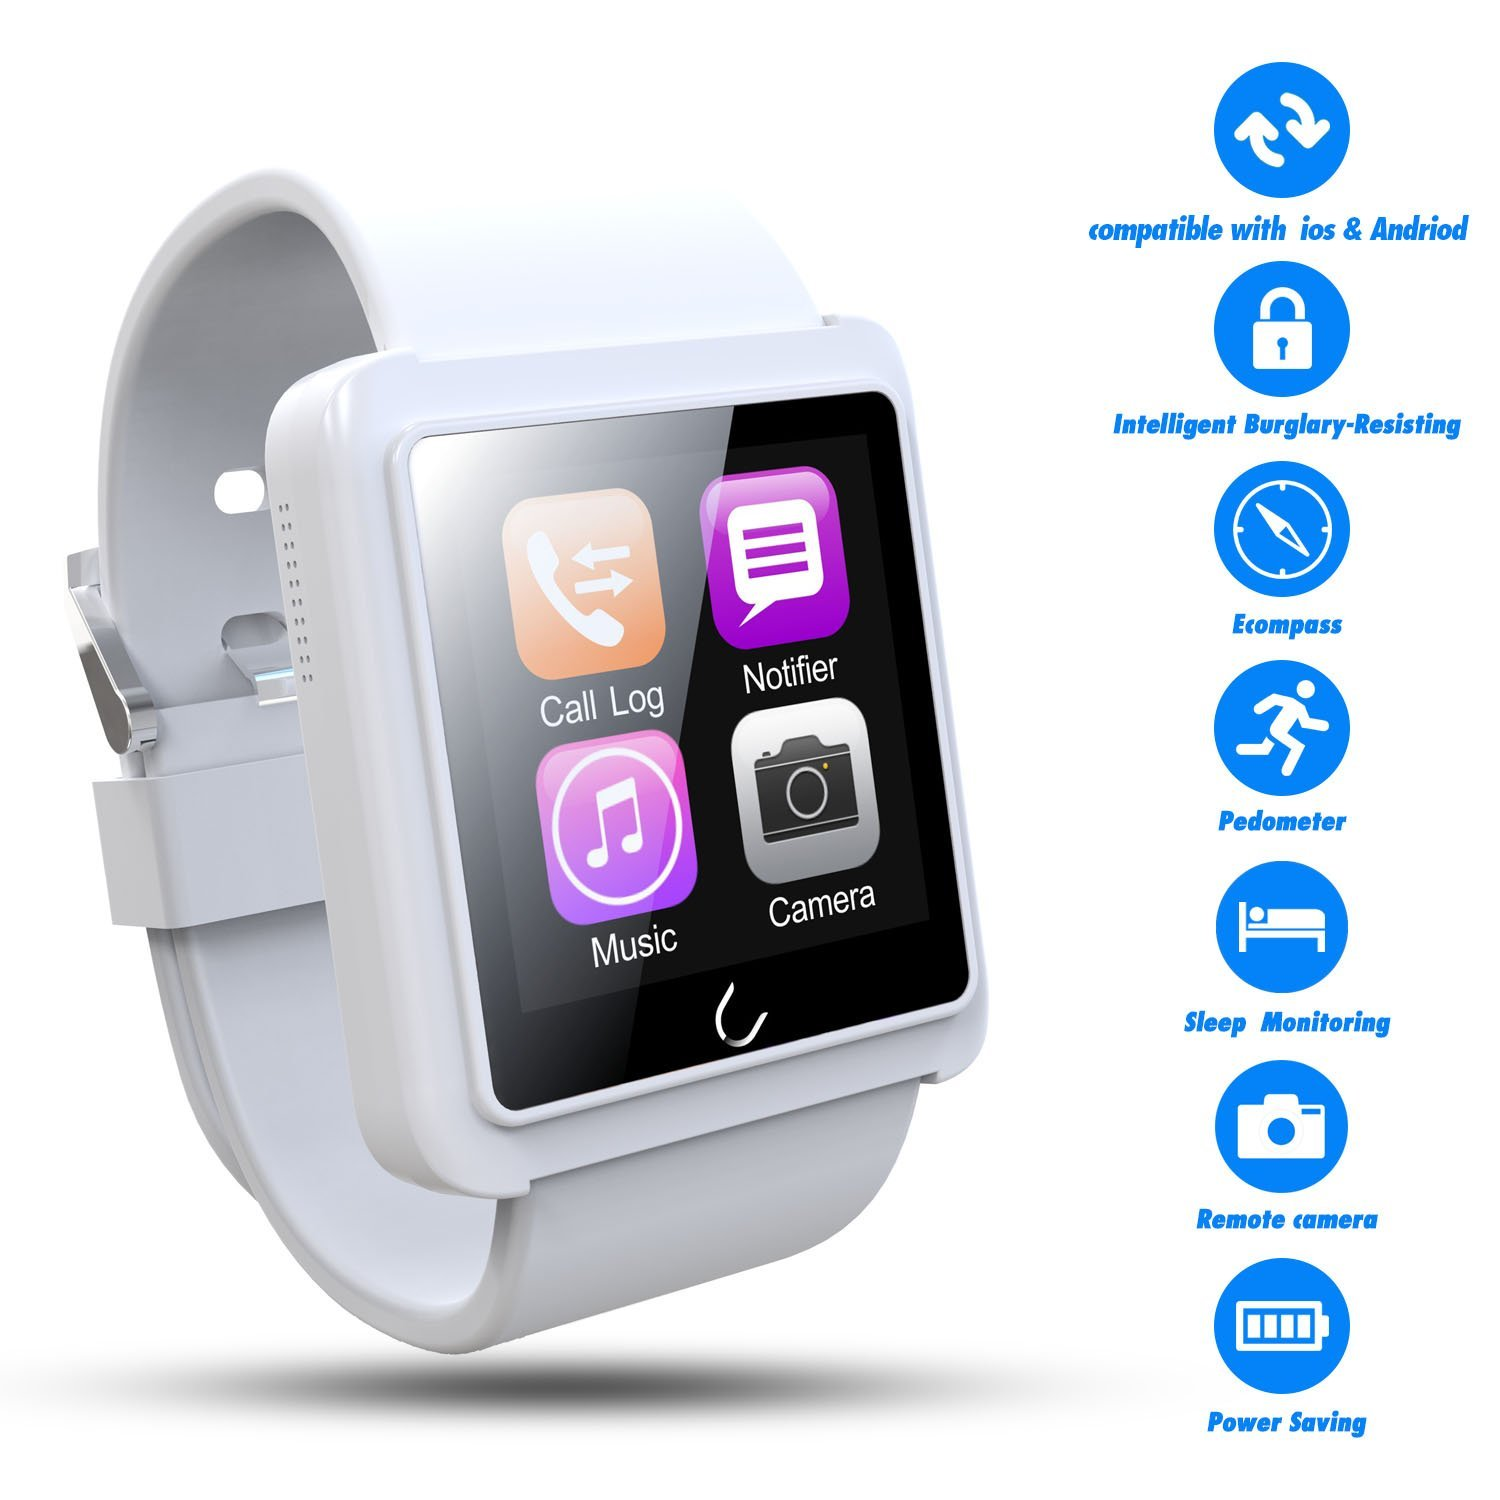 Smart Watch,Best Valentines Gift,Couples Watches,TWOBIU(TM)Bluetooth Smart Watch U10L with Pedometer+Anti-lost+Remote Camera+Sleep Monitoring+Stereo Music for IOS, Andriod Devices-White